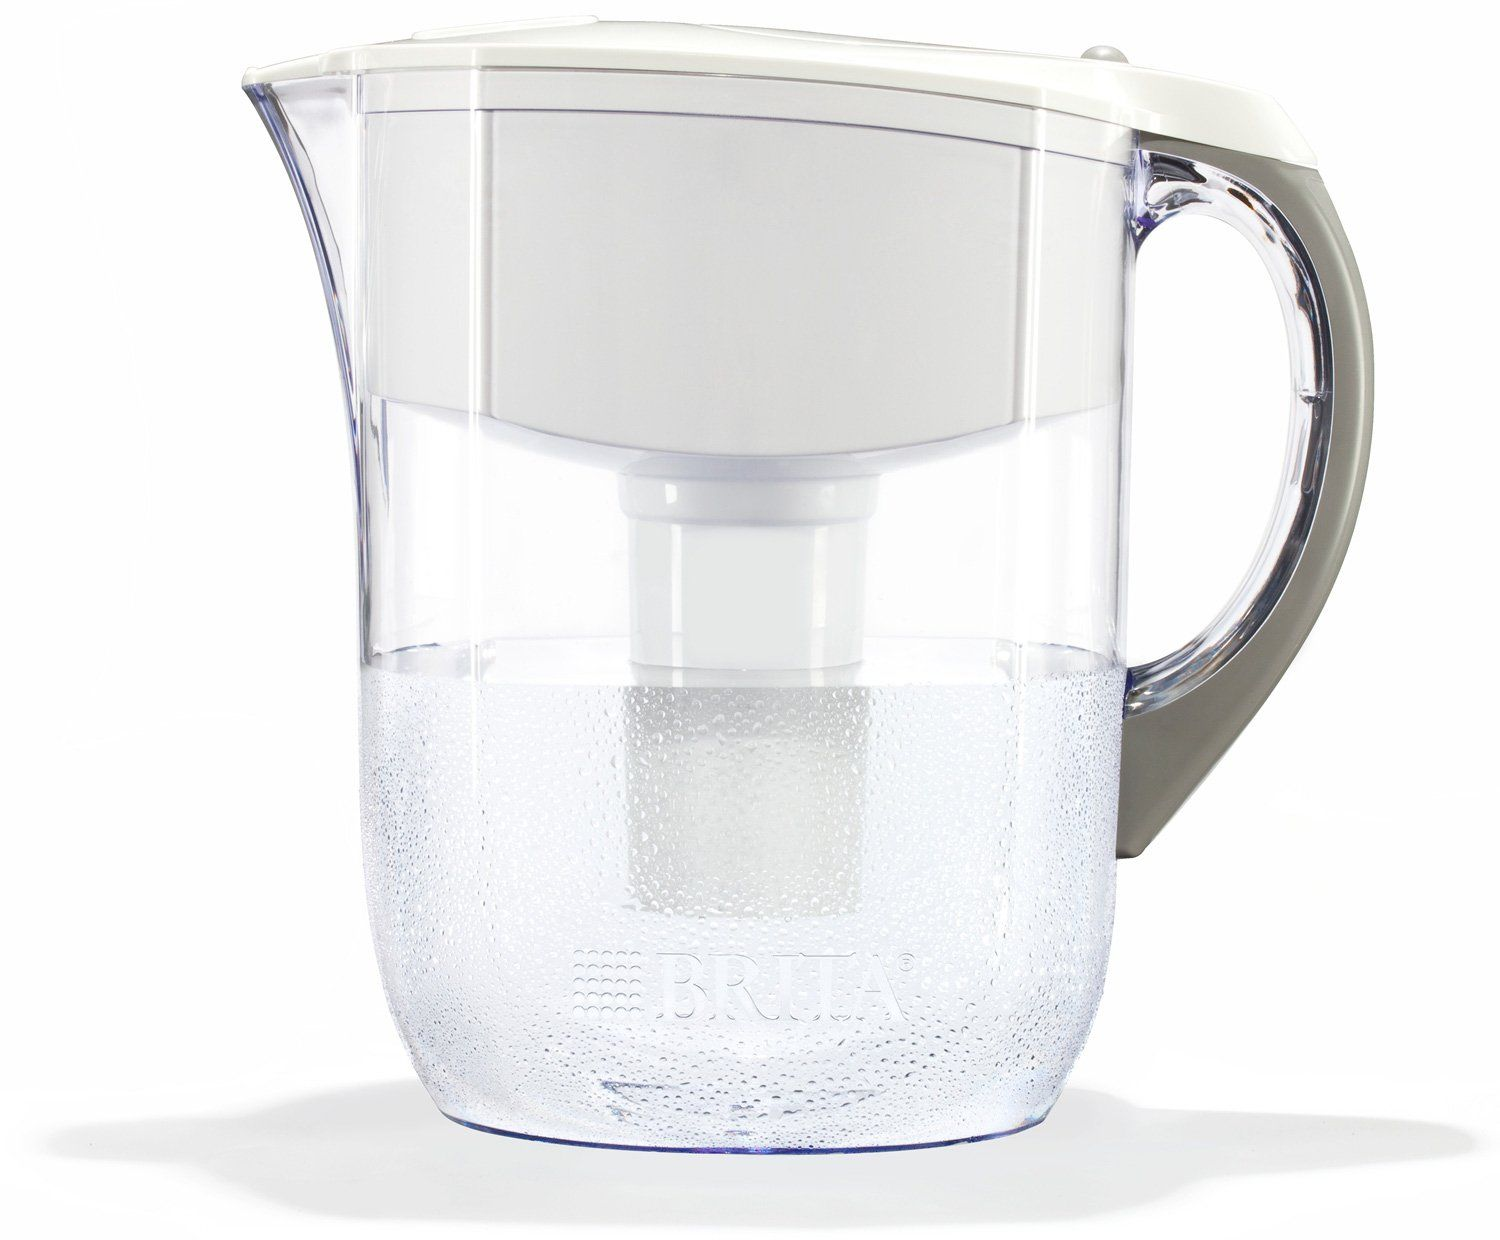 Brita Large 10 Cup Water Filter Pitcher with 1 Standard